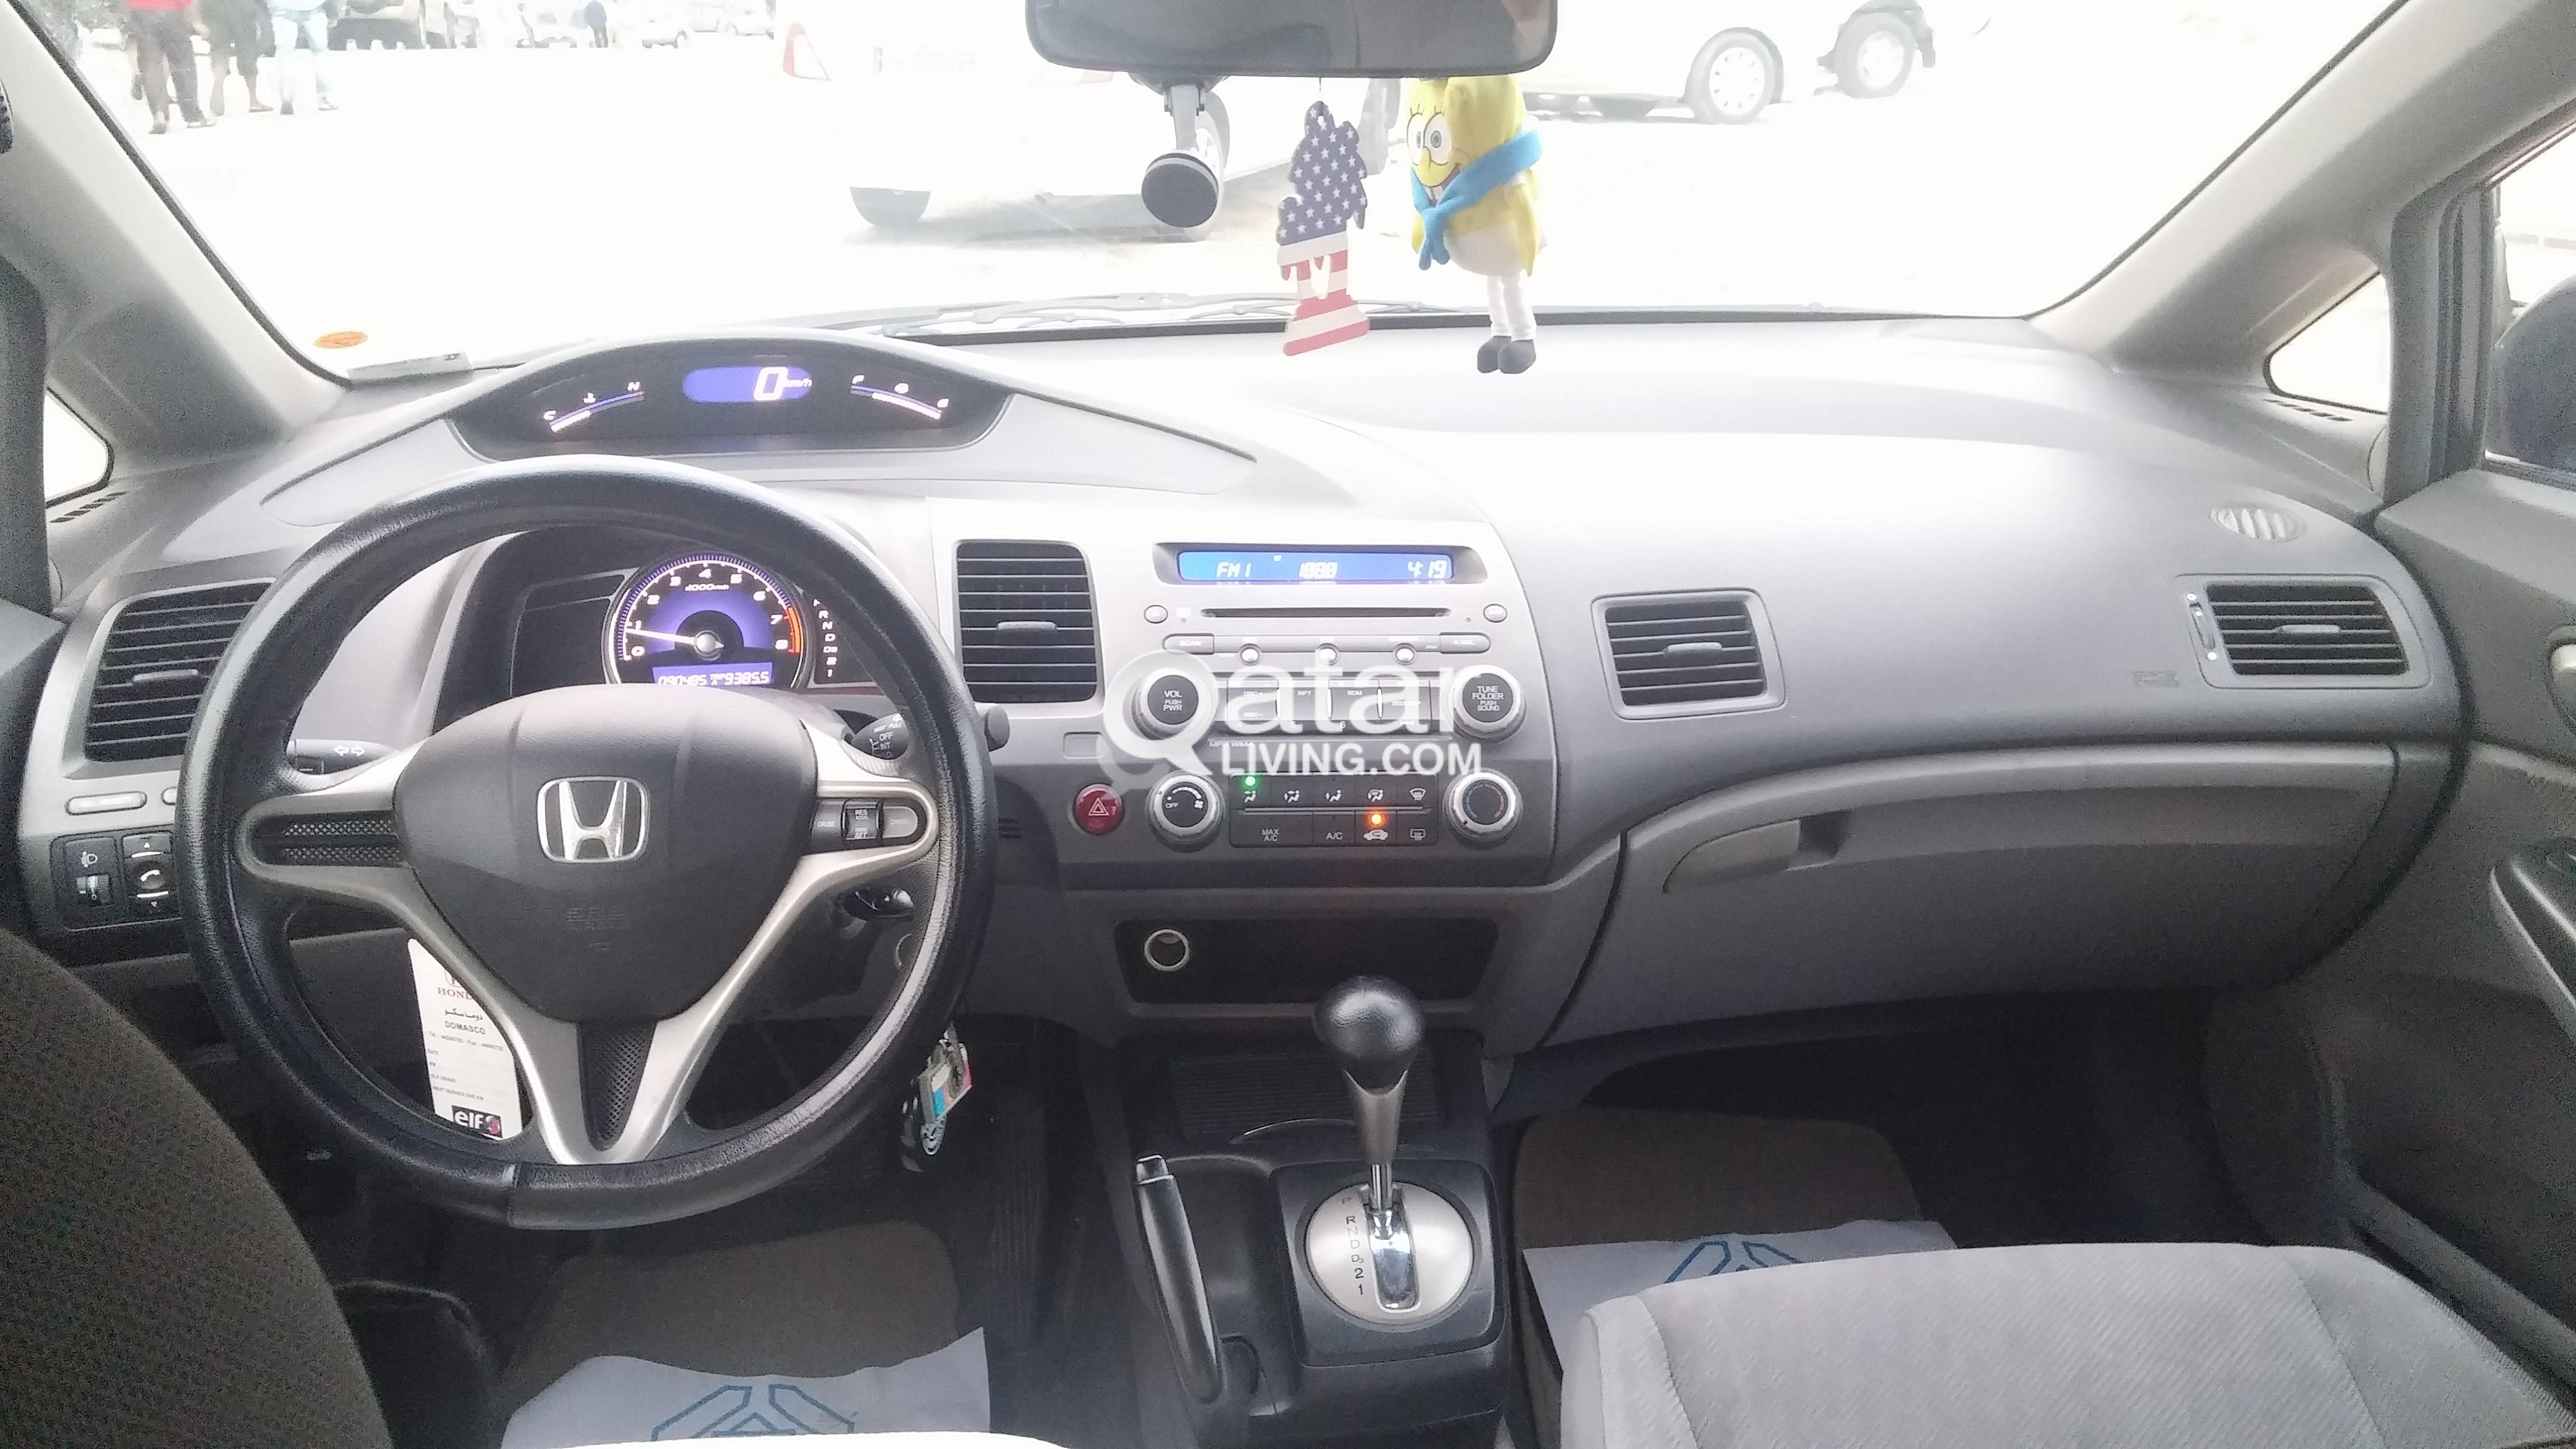 Honda Civic 2009 for Sale | Qatar Living